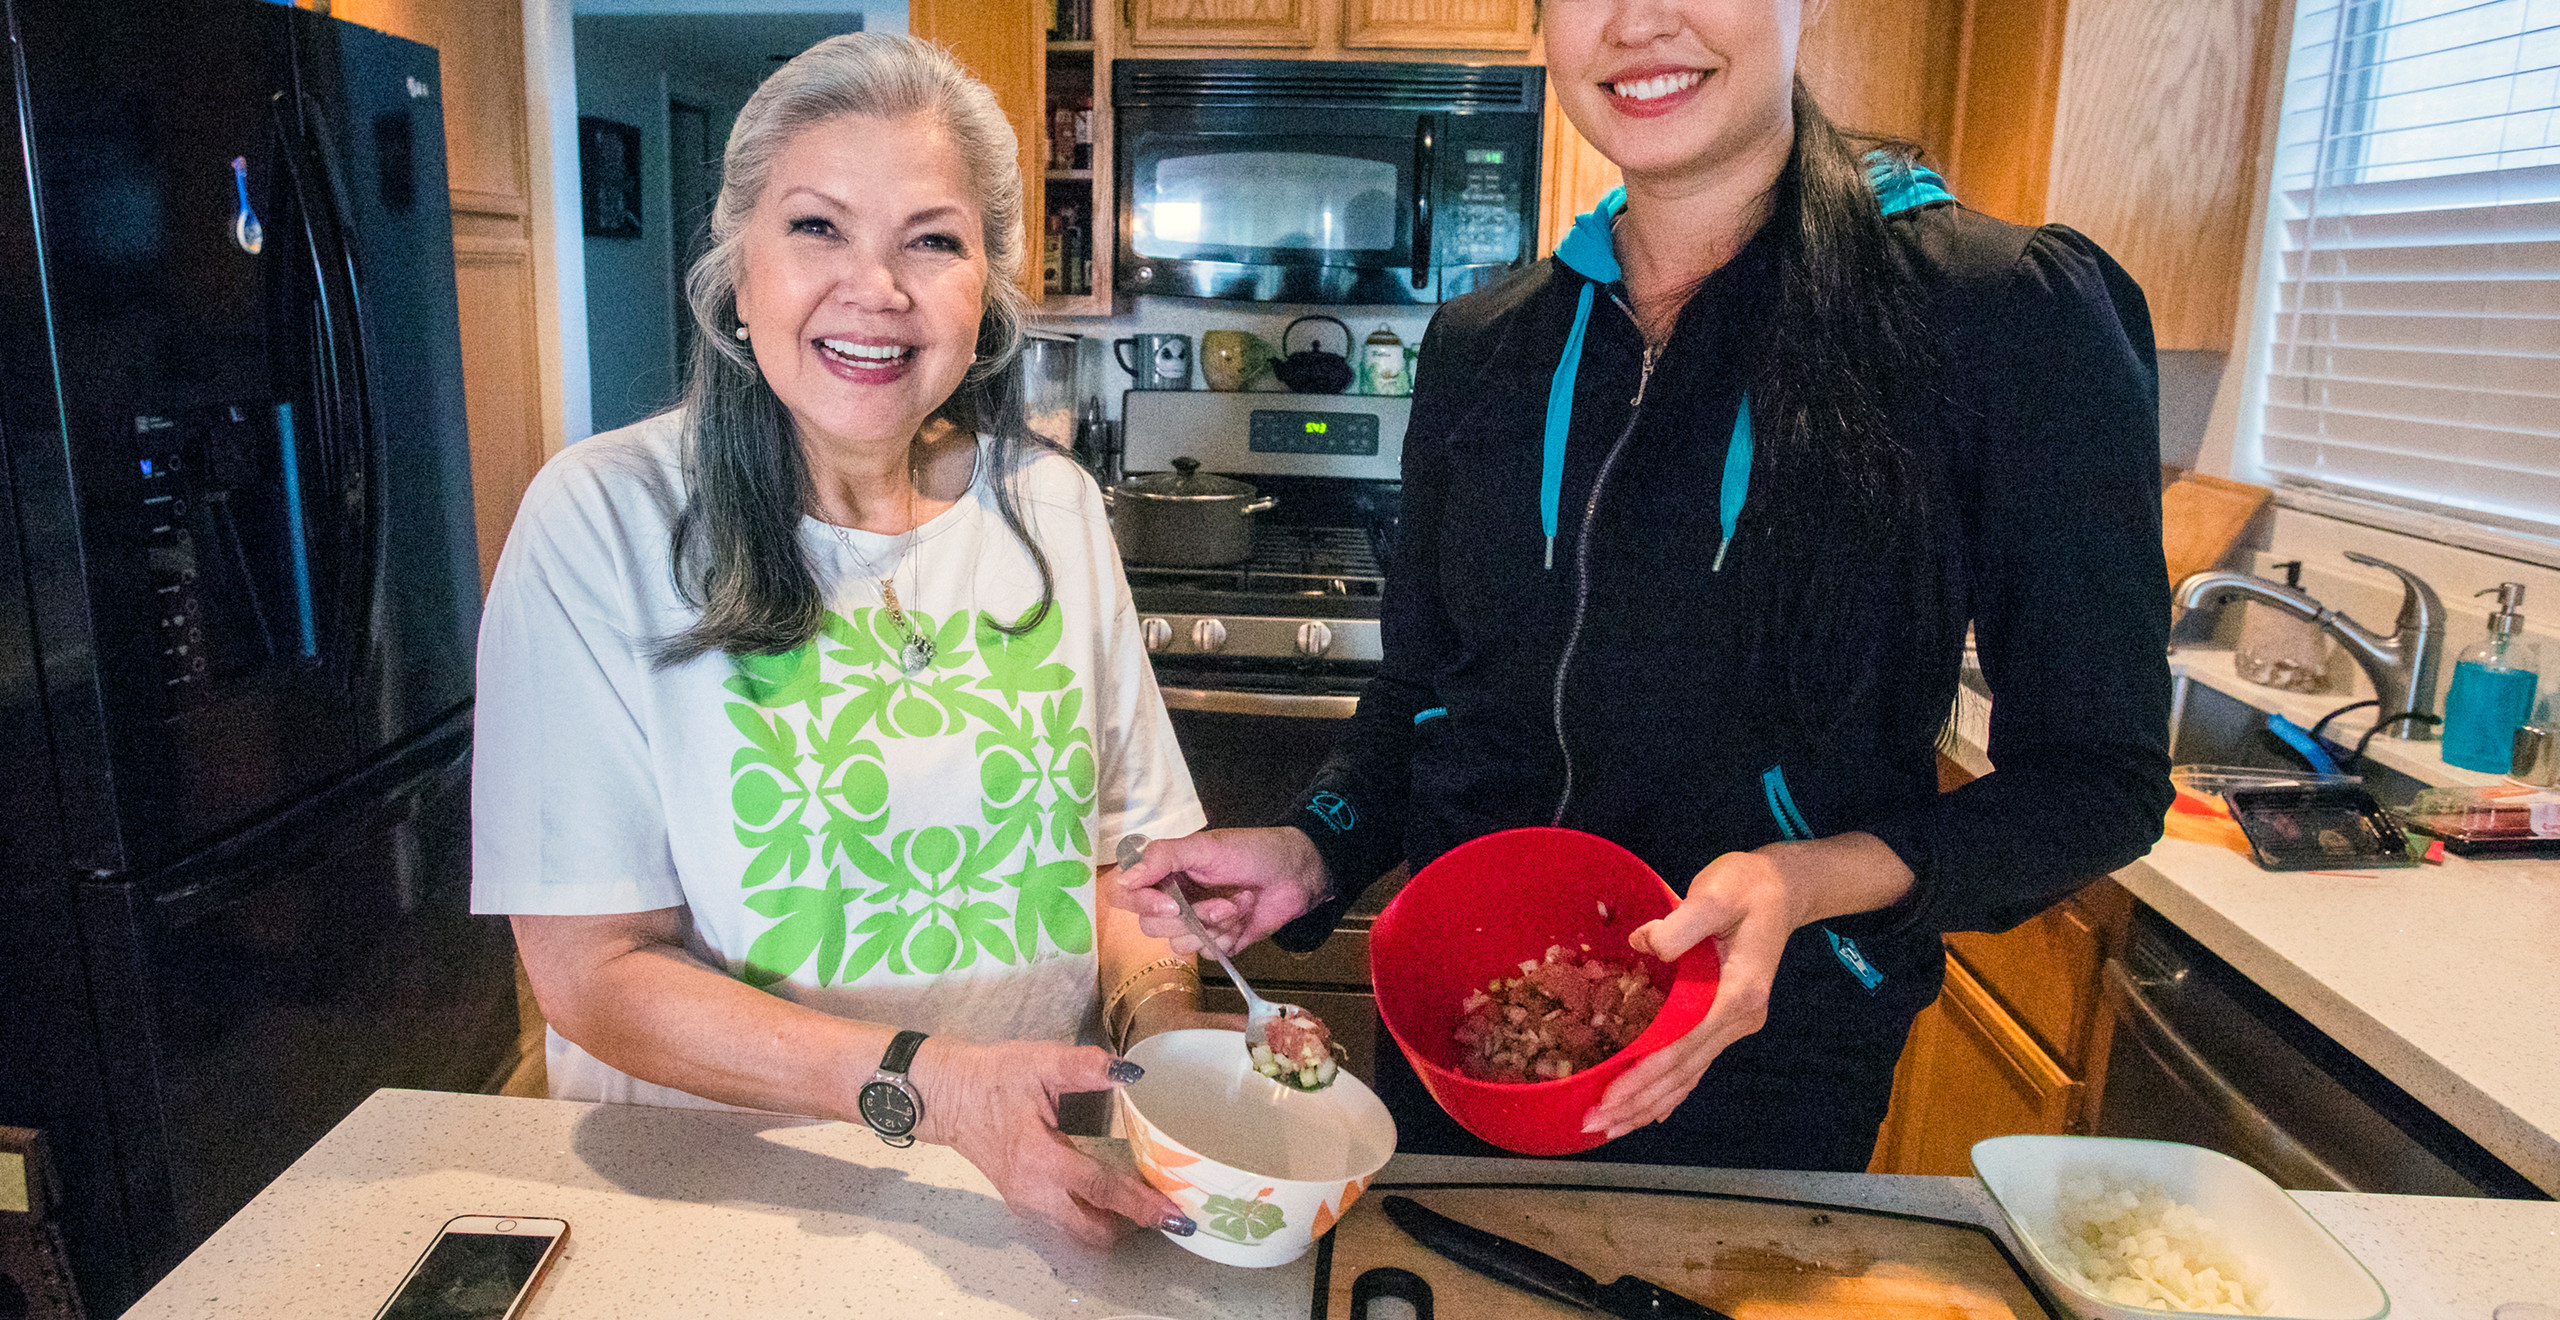 Haunani, who is wearing a Hawaiian quilt-patterned tshirt, stands with her daughter Taylor at the counter while they make inamona poke, a raw tuna dish.